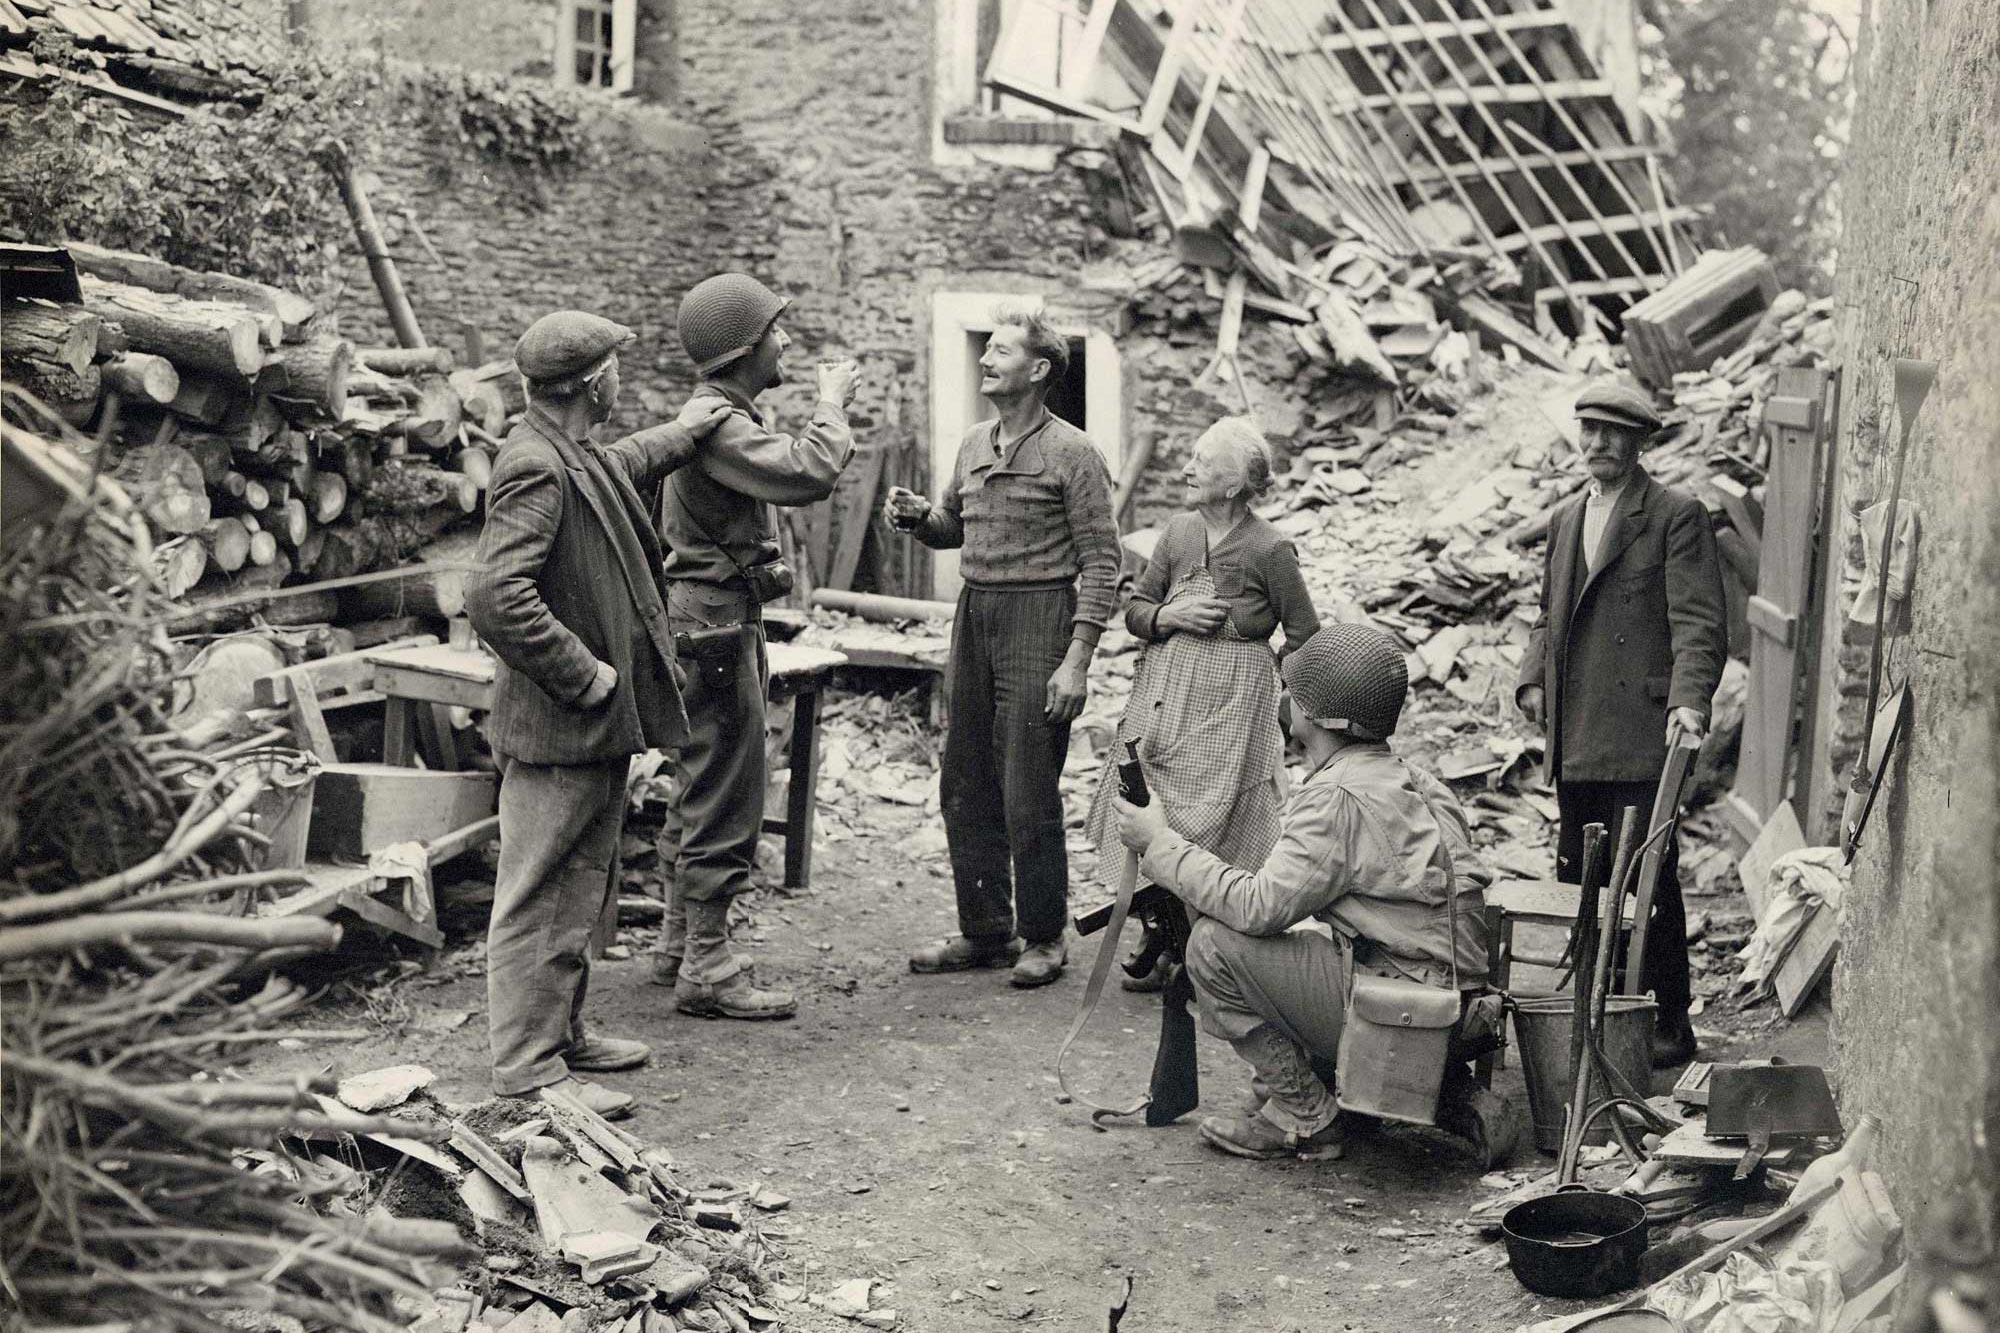 An American Army officer and a French civilian share a toast amidst the rubble of the town of Saint-Lô.